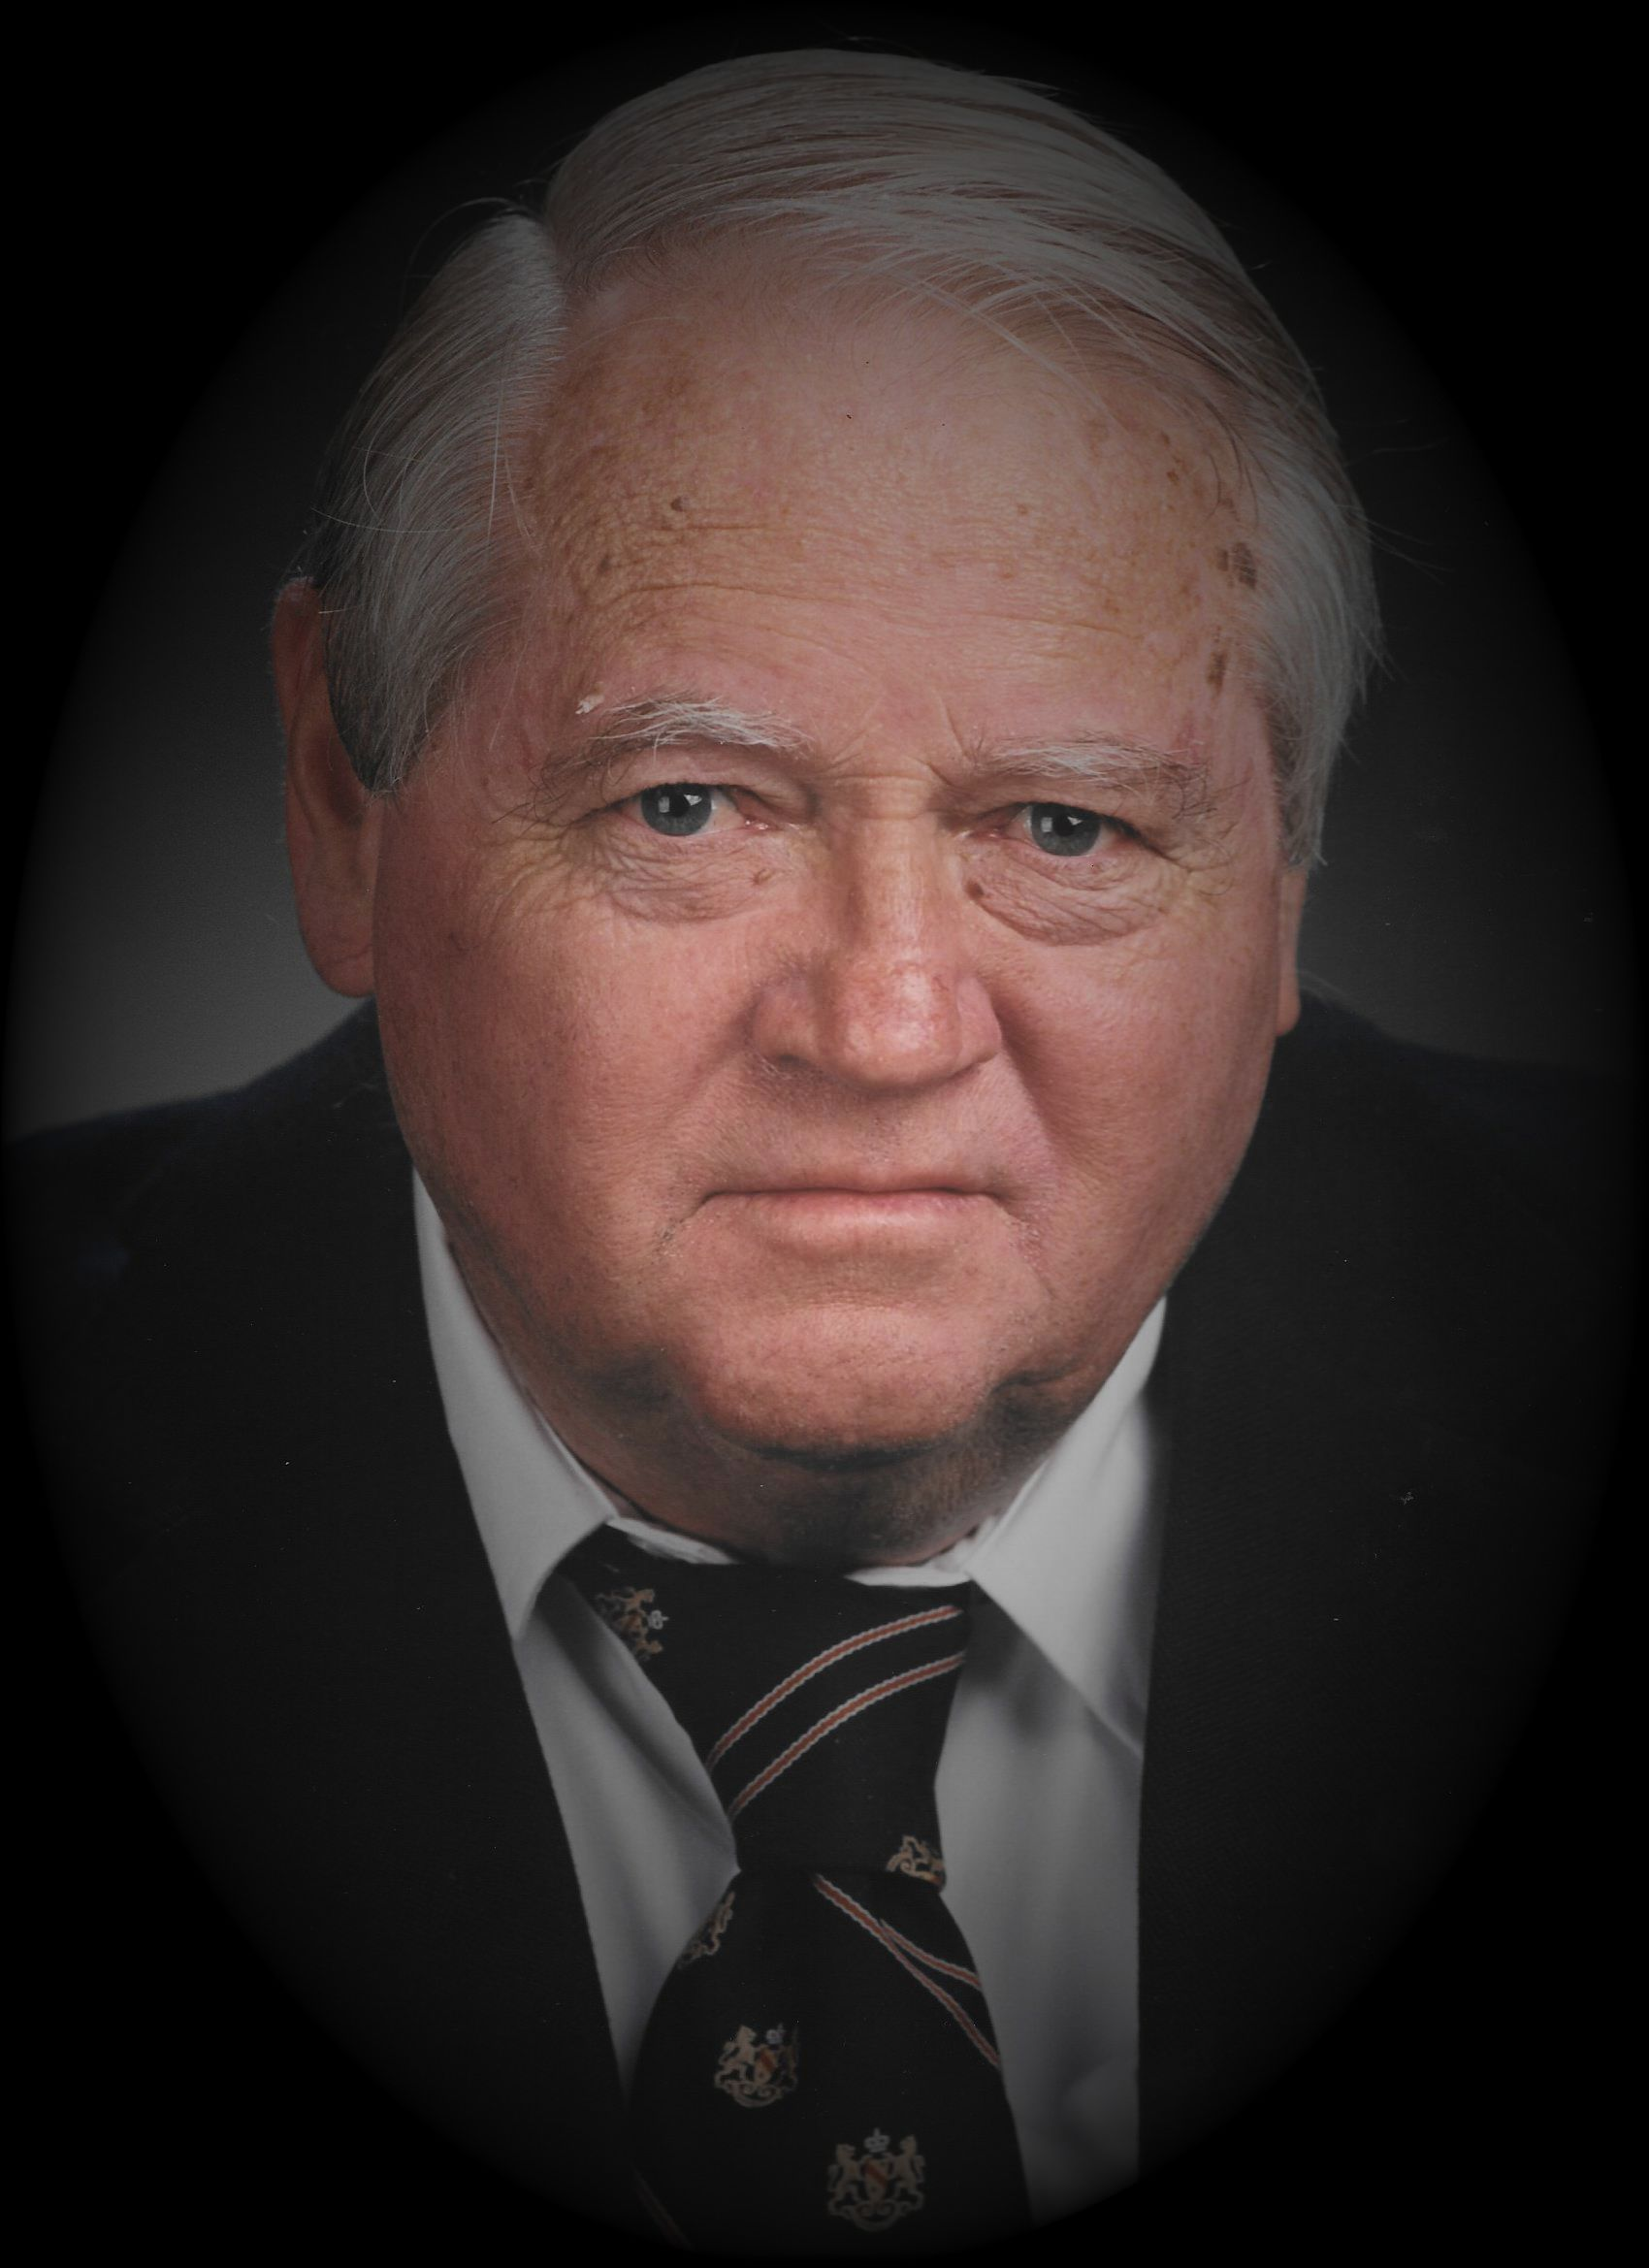 Obituary image of James Otis Bass